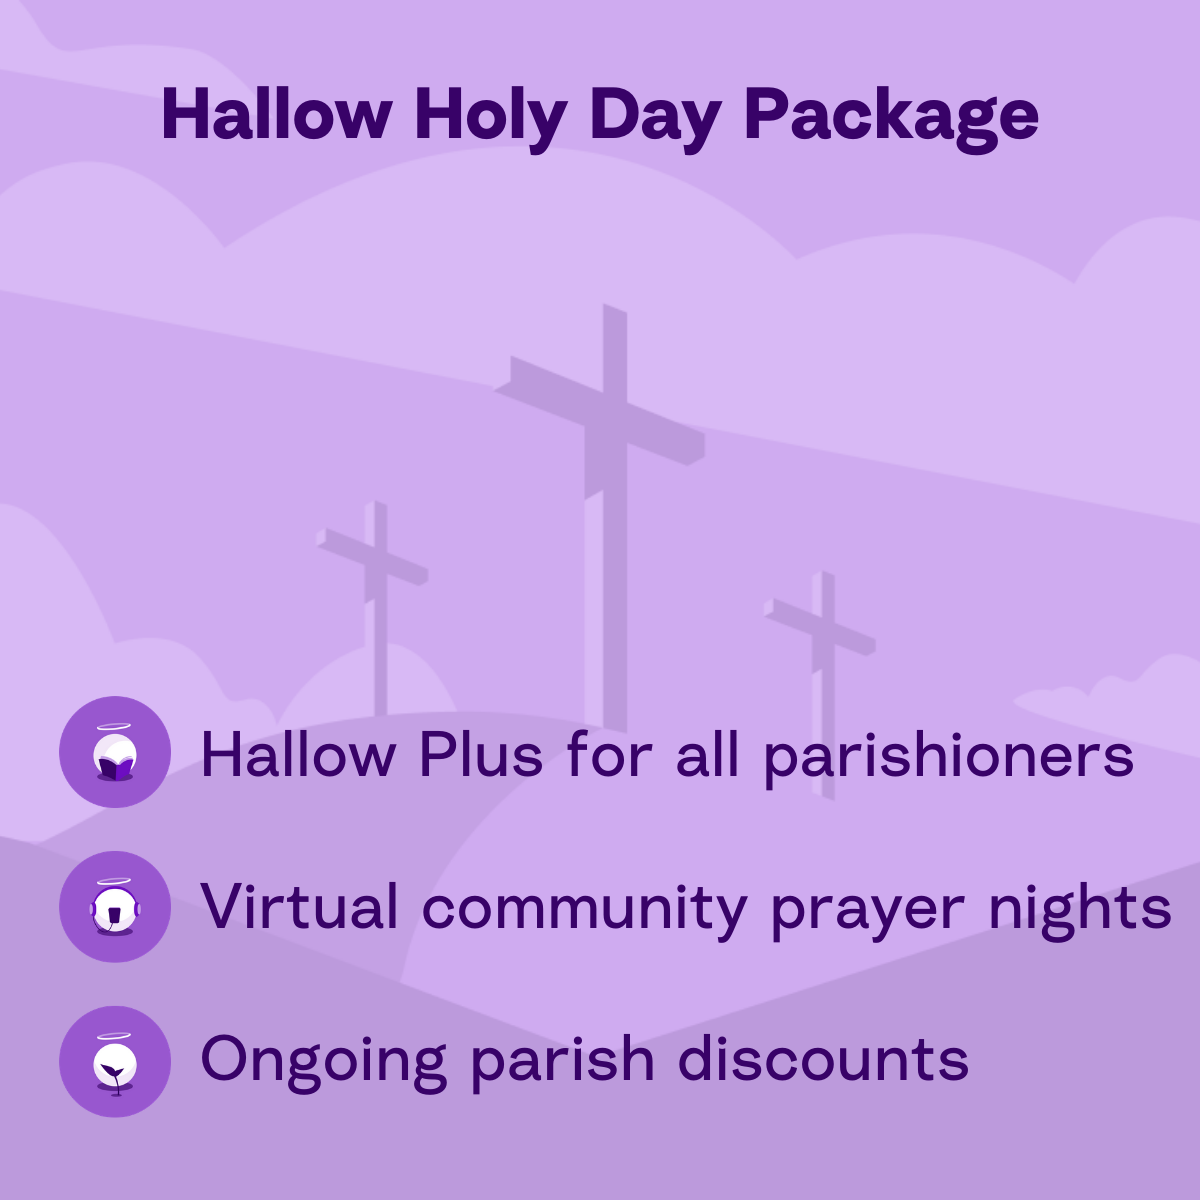 Parish Holy Day Package